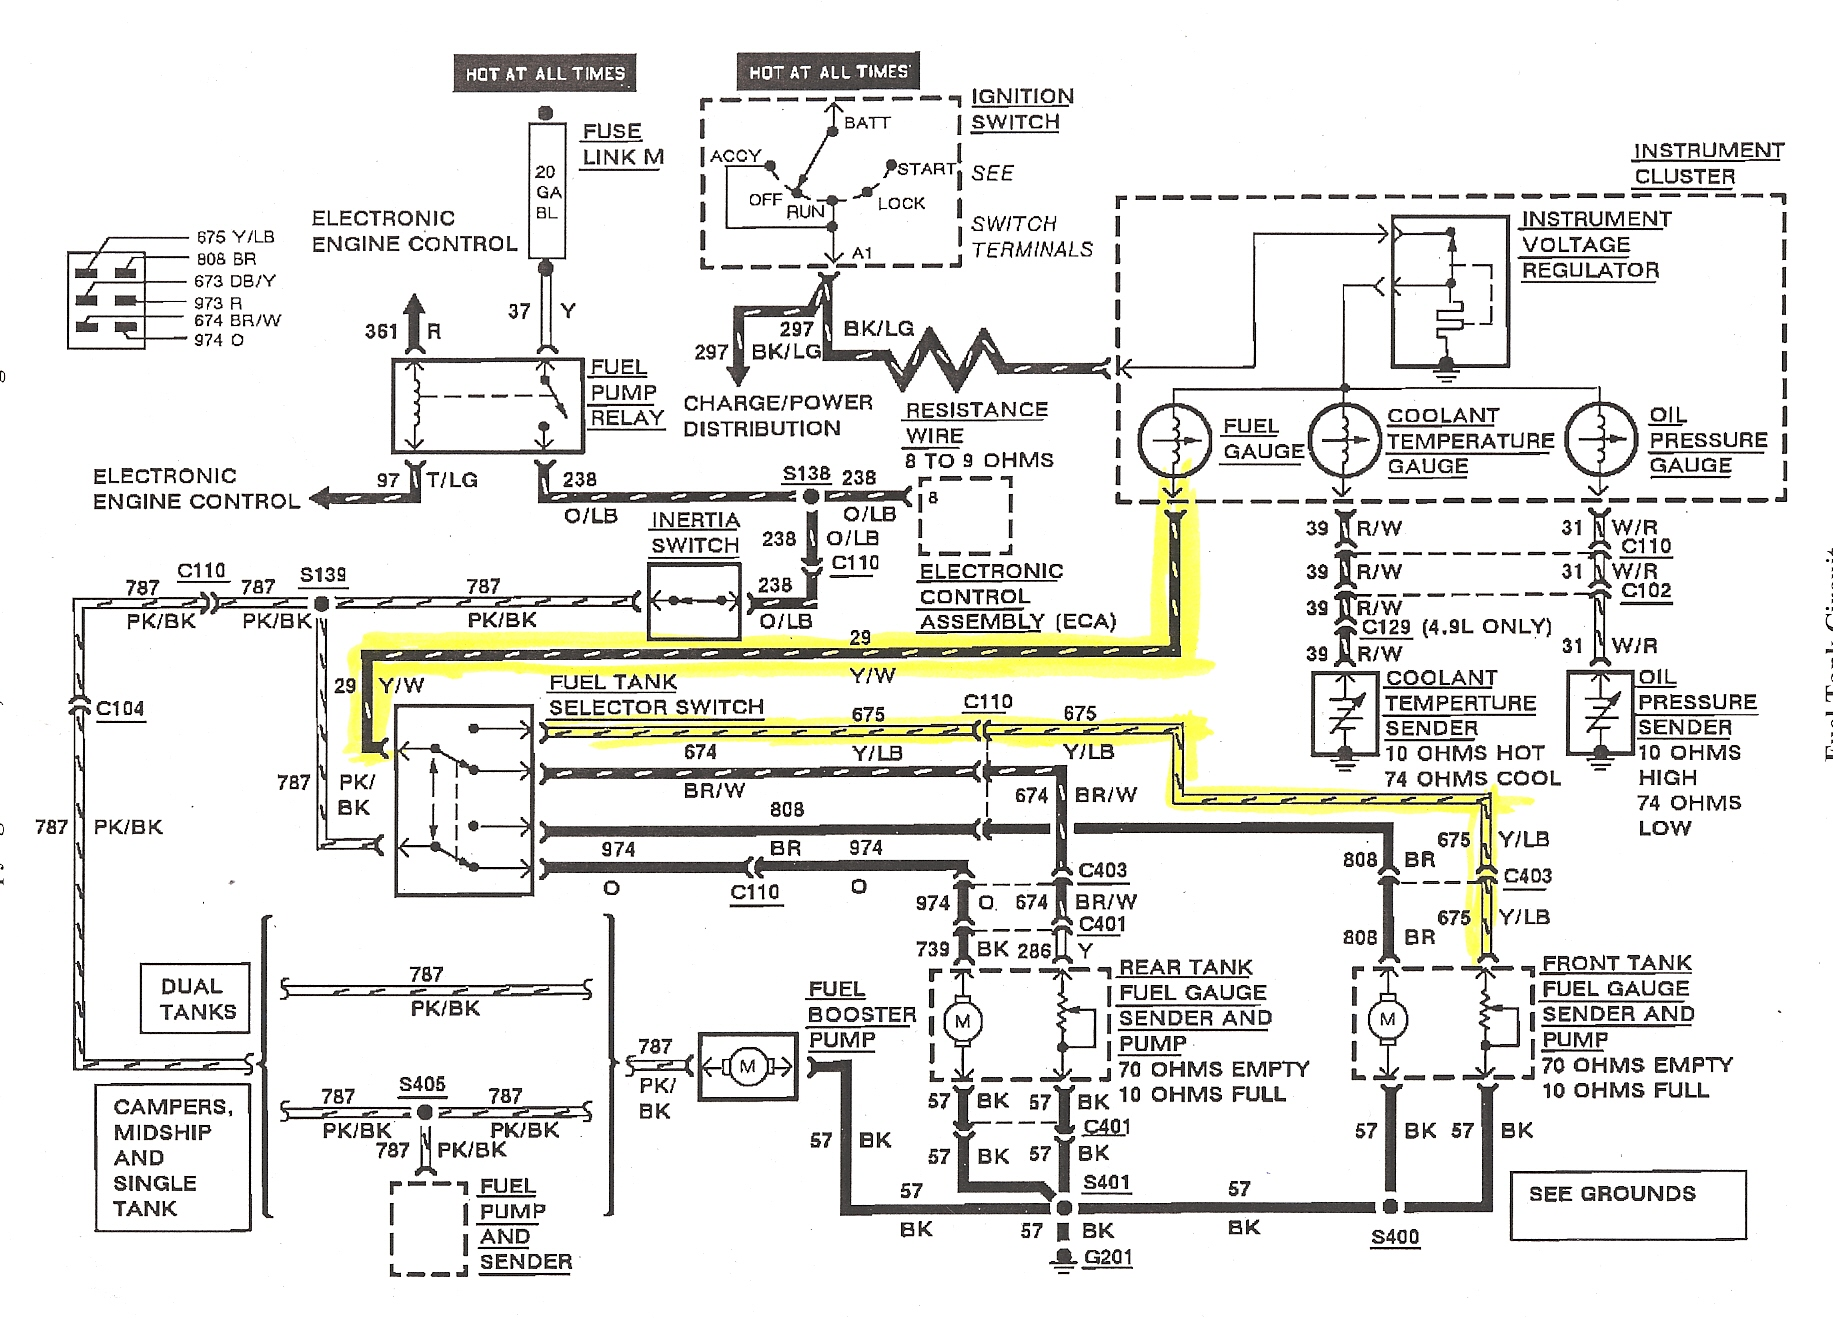 2006 Fuel System Diagram Best Collection Electrical Wiring Image For